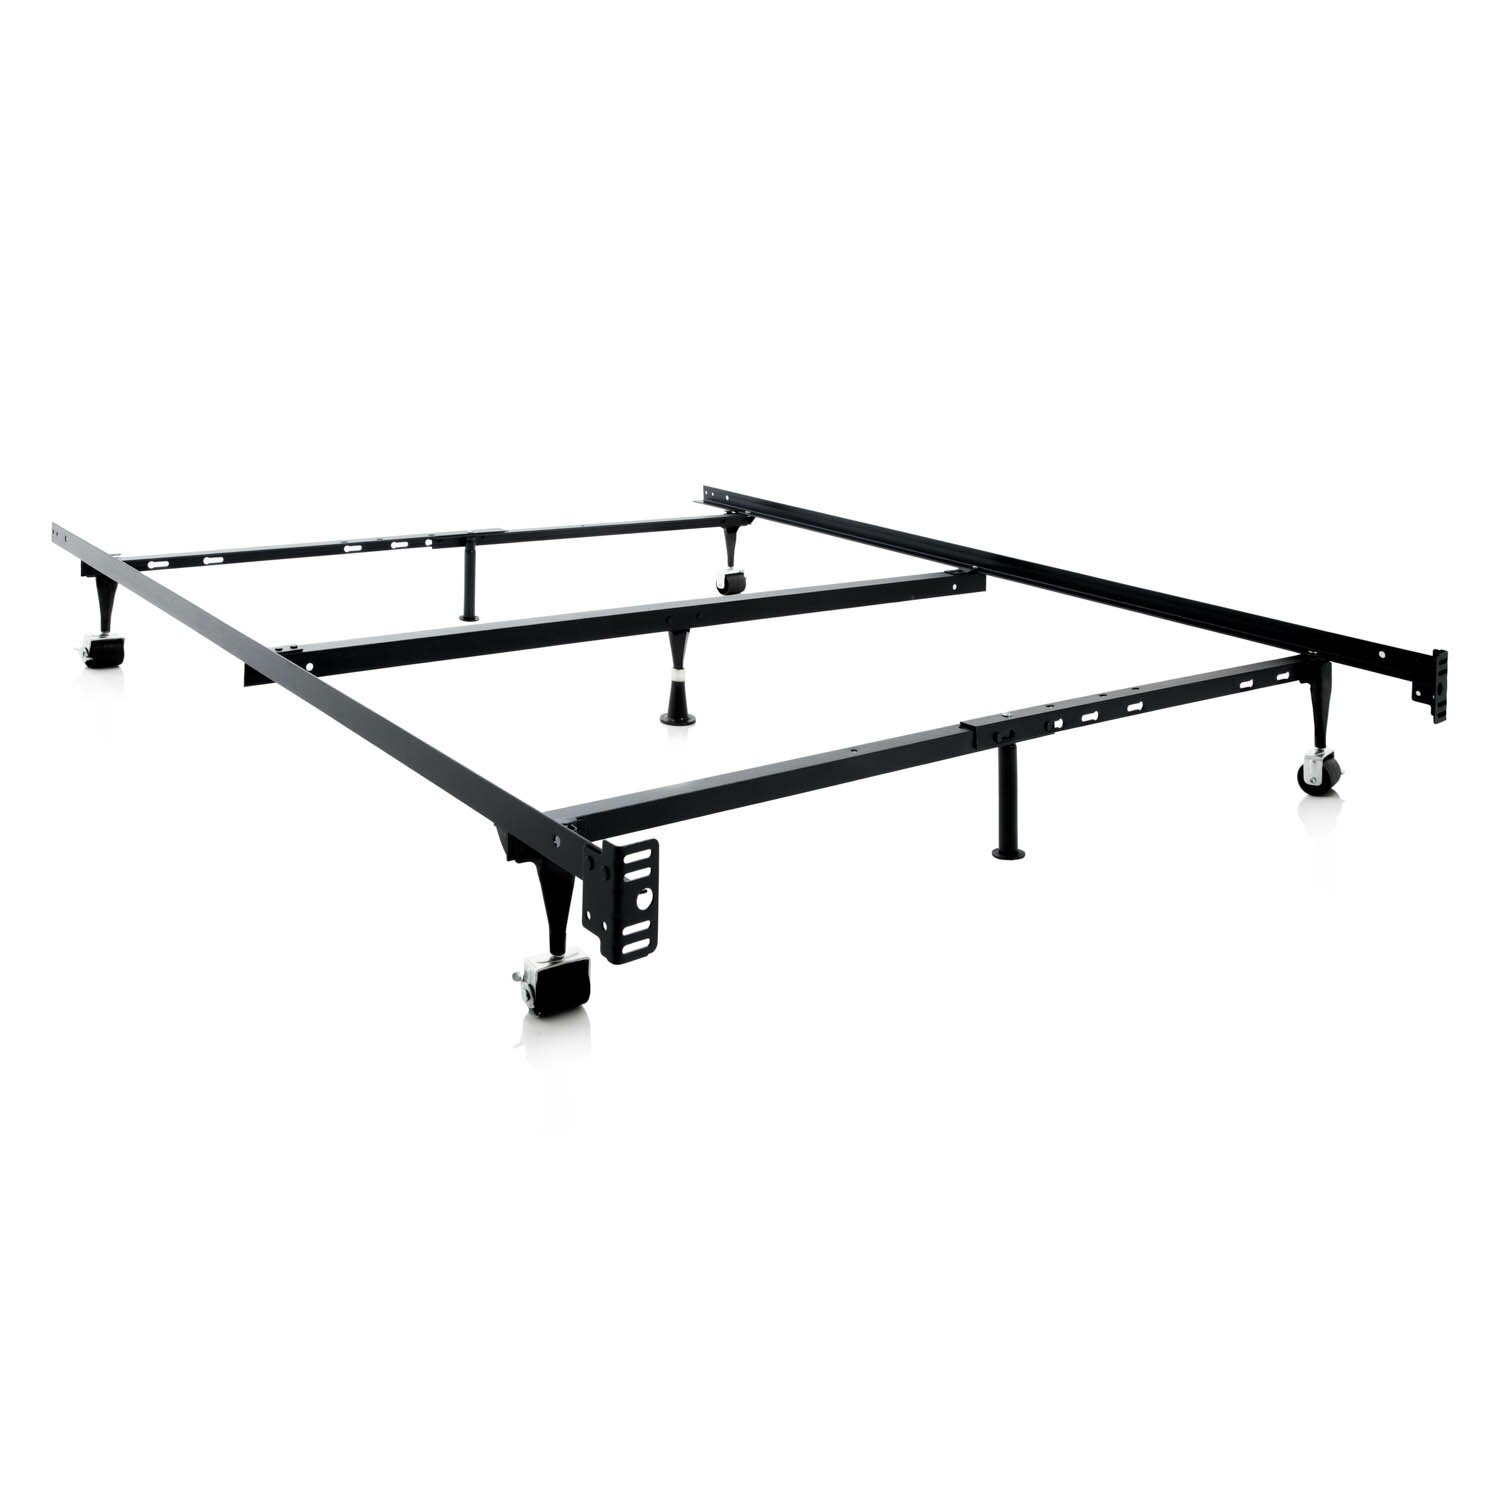 Malouf Heavy Duty 7 Leg Adjustable Metal Bed Frame With